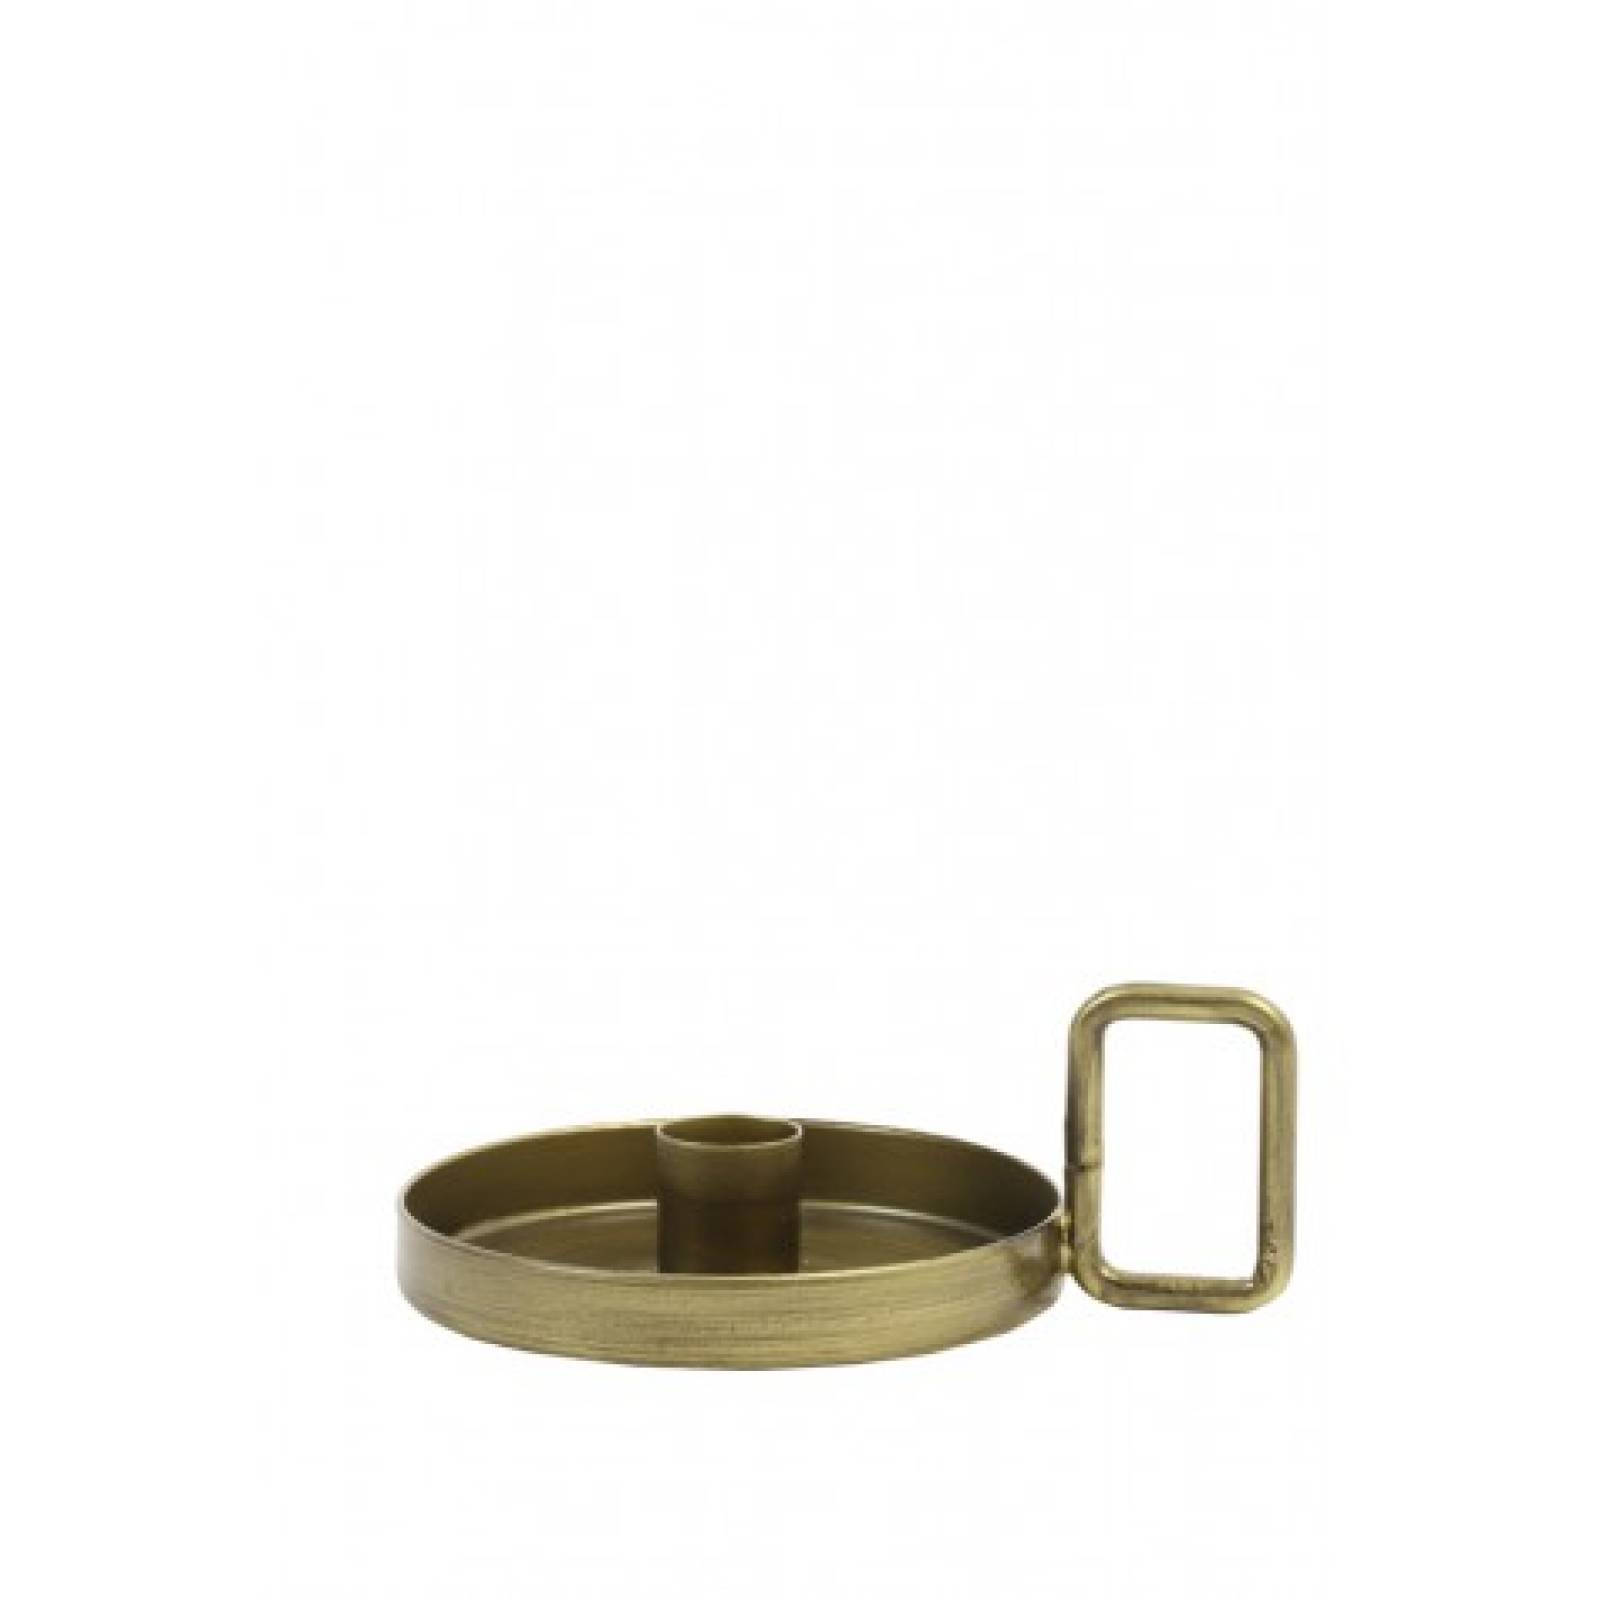 Gold Candleholder Dish With Squared Handle